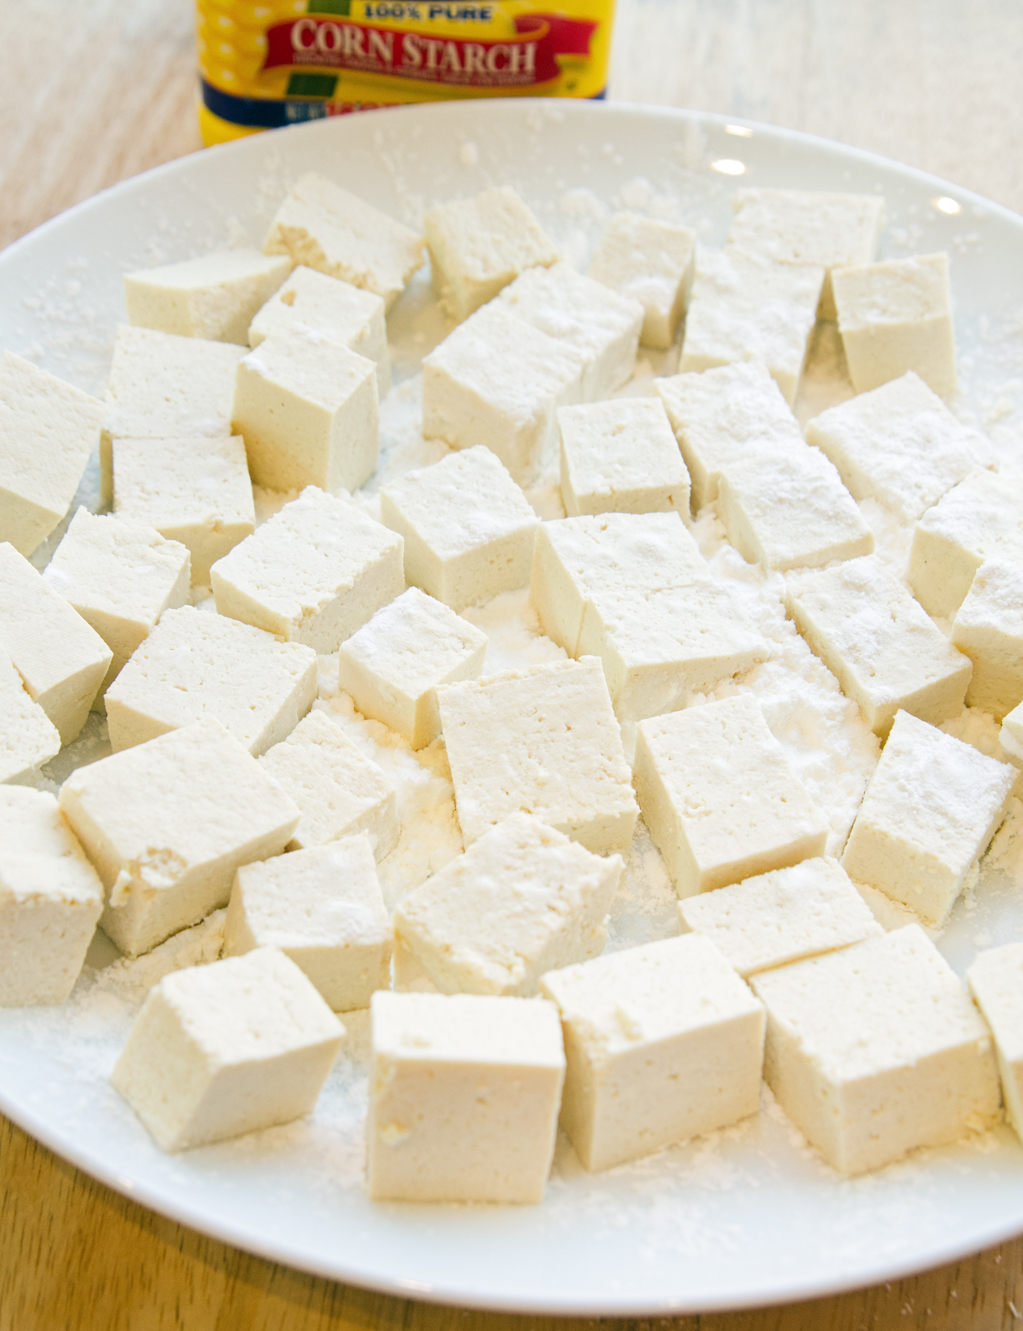 Corn Starch Dusted Tofu